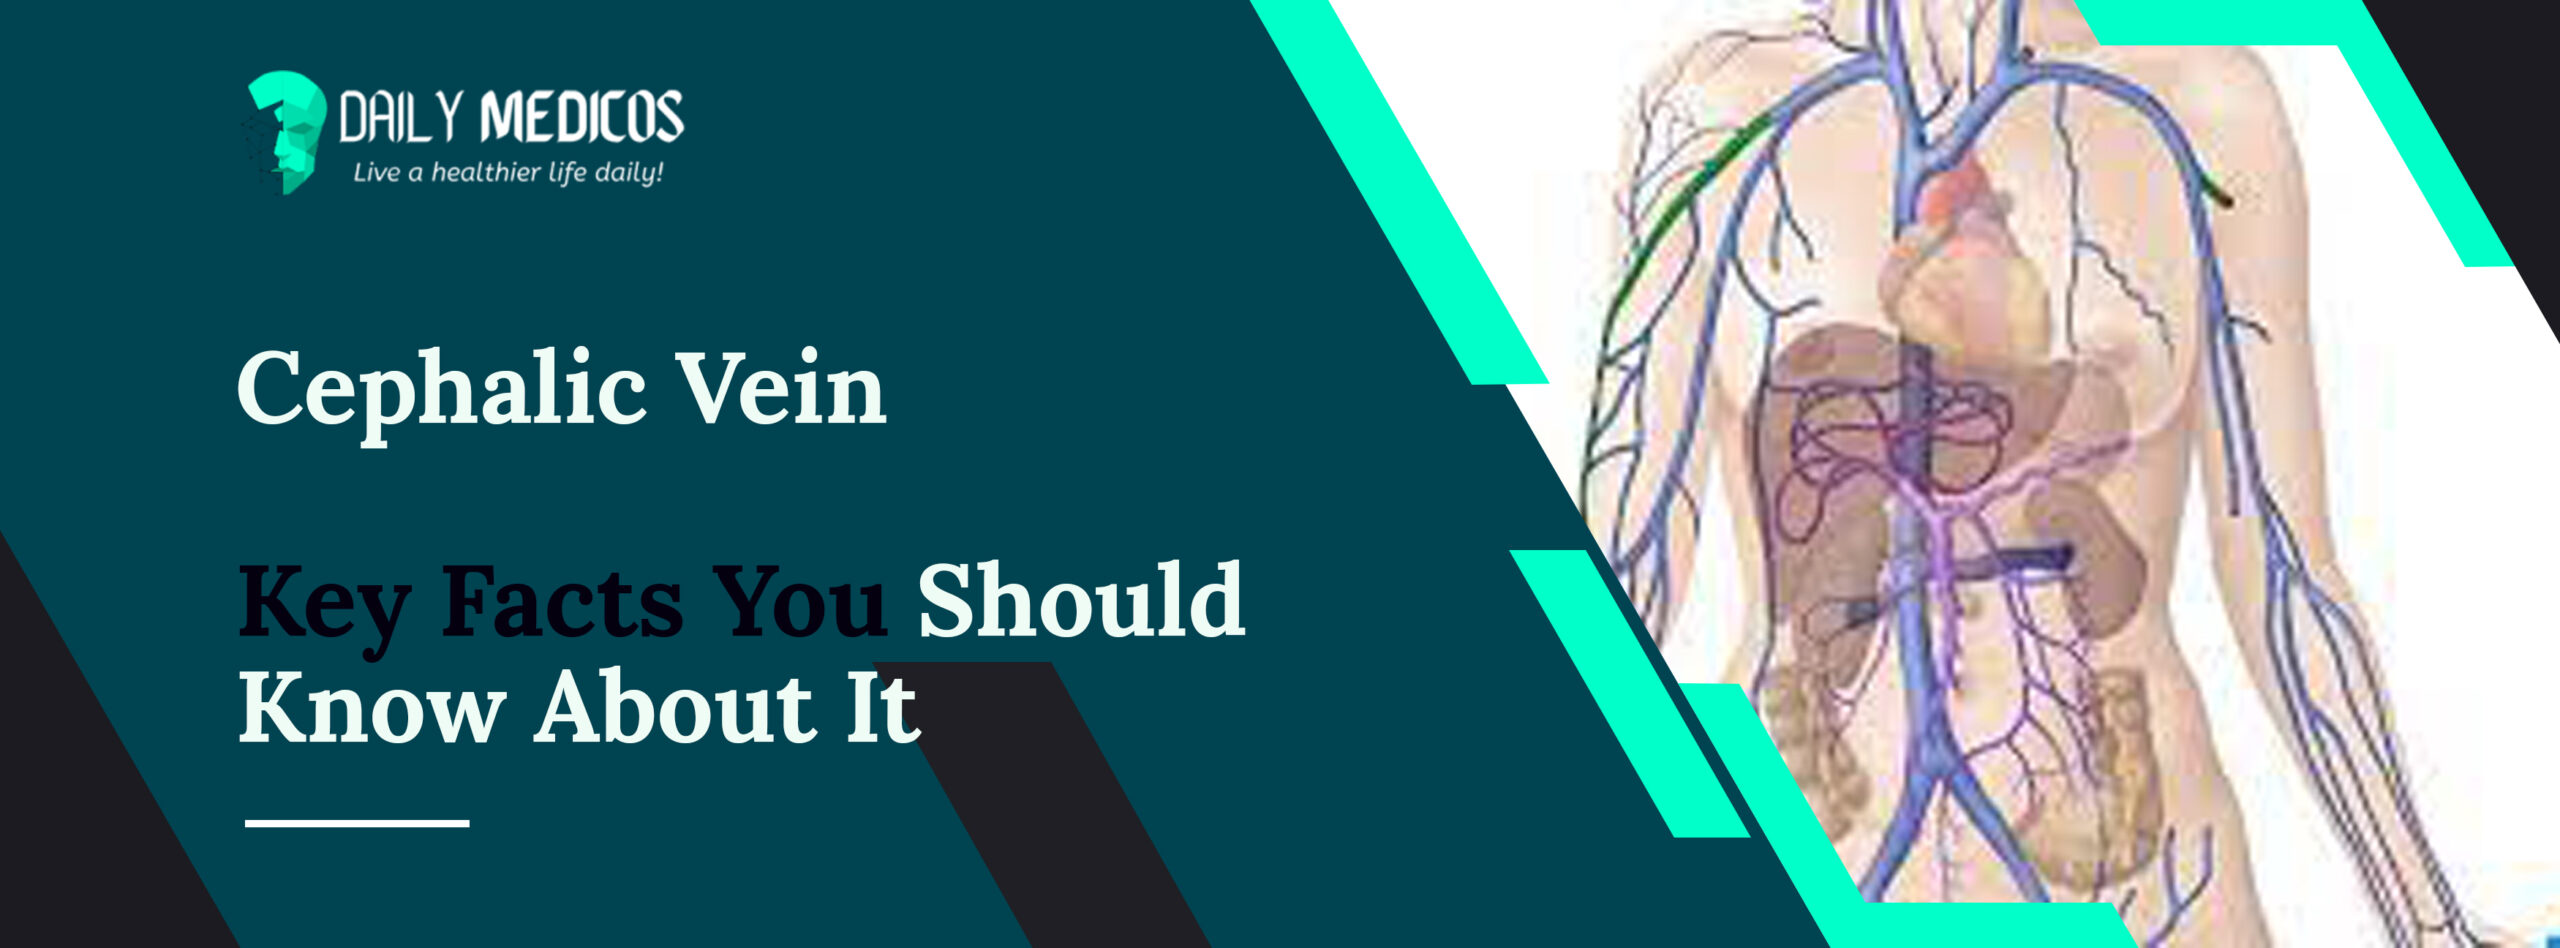 Cephalic vein [Key Facts You Should Know About It] 1 - Daily Medicos